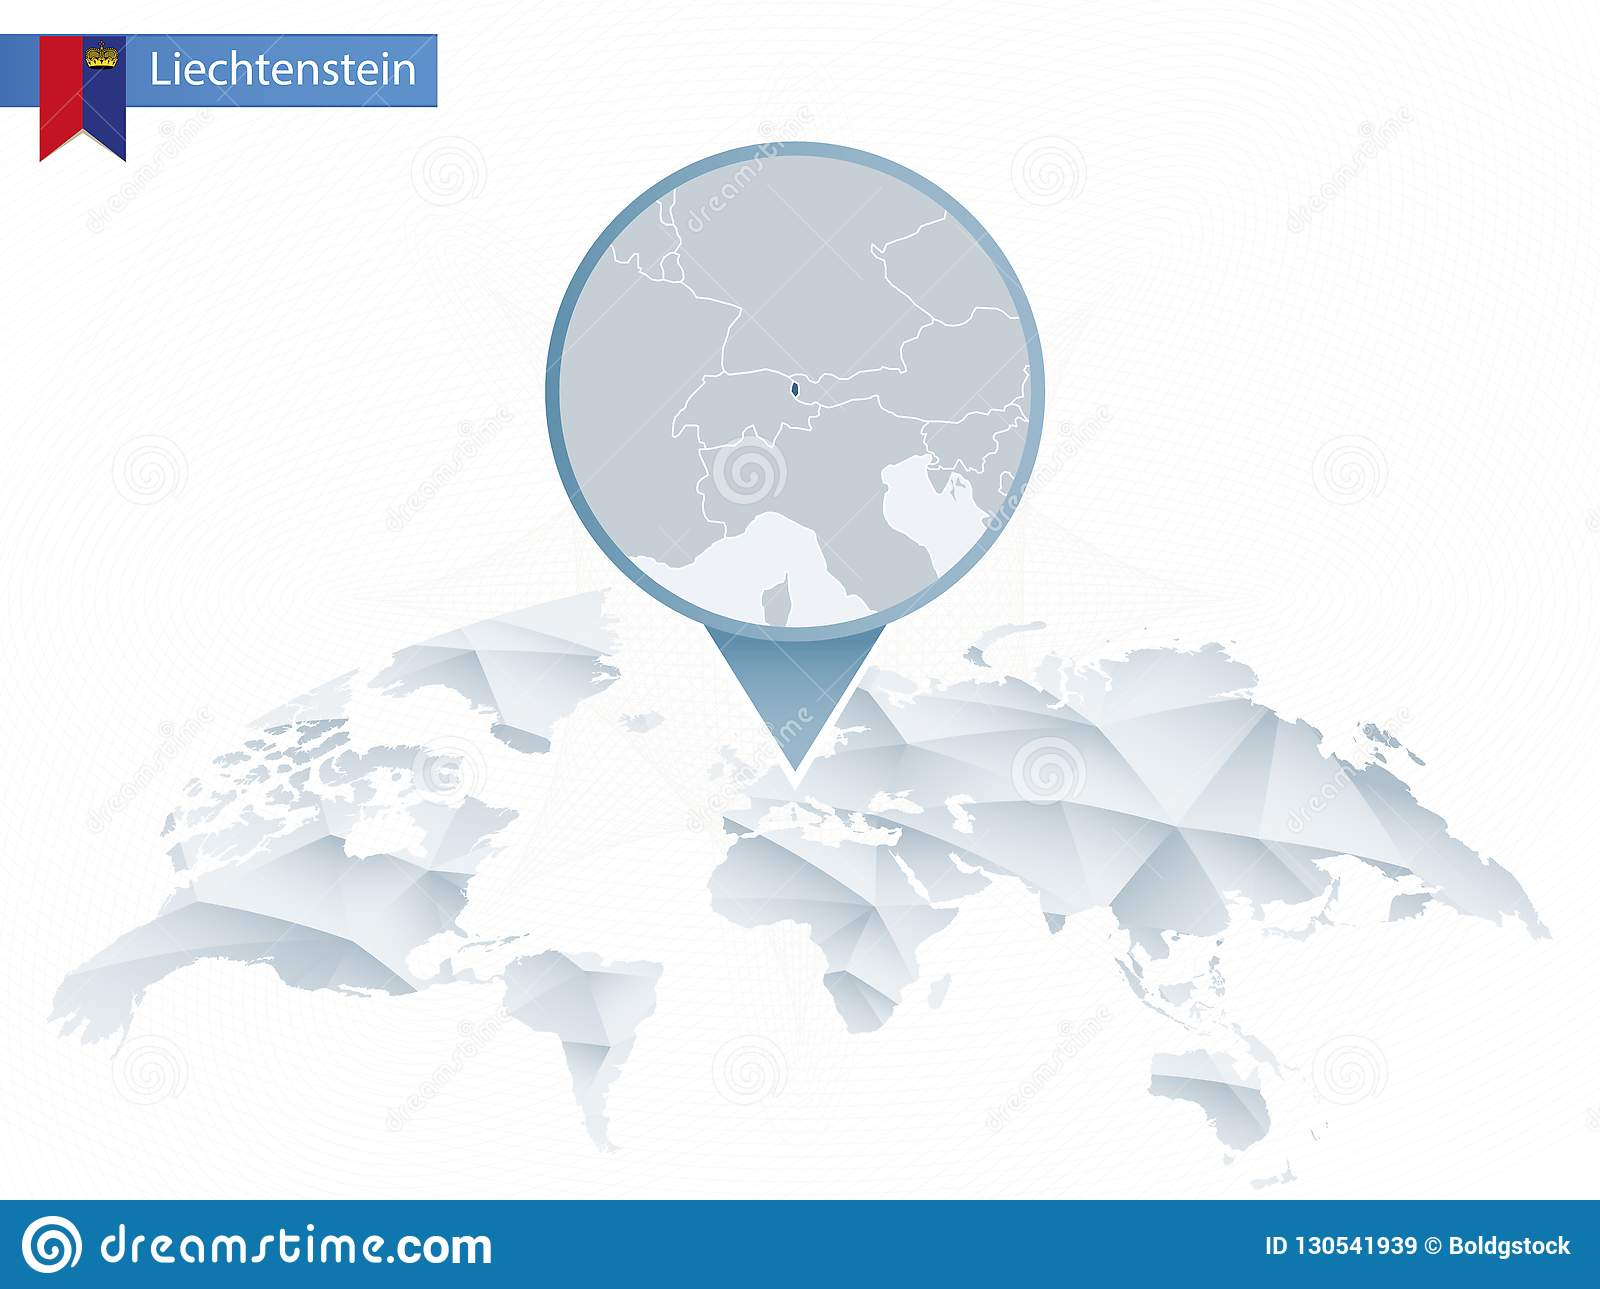 Abstract Rounded World Map With Pinned Detailed Liechtenstein Ma